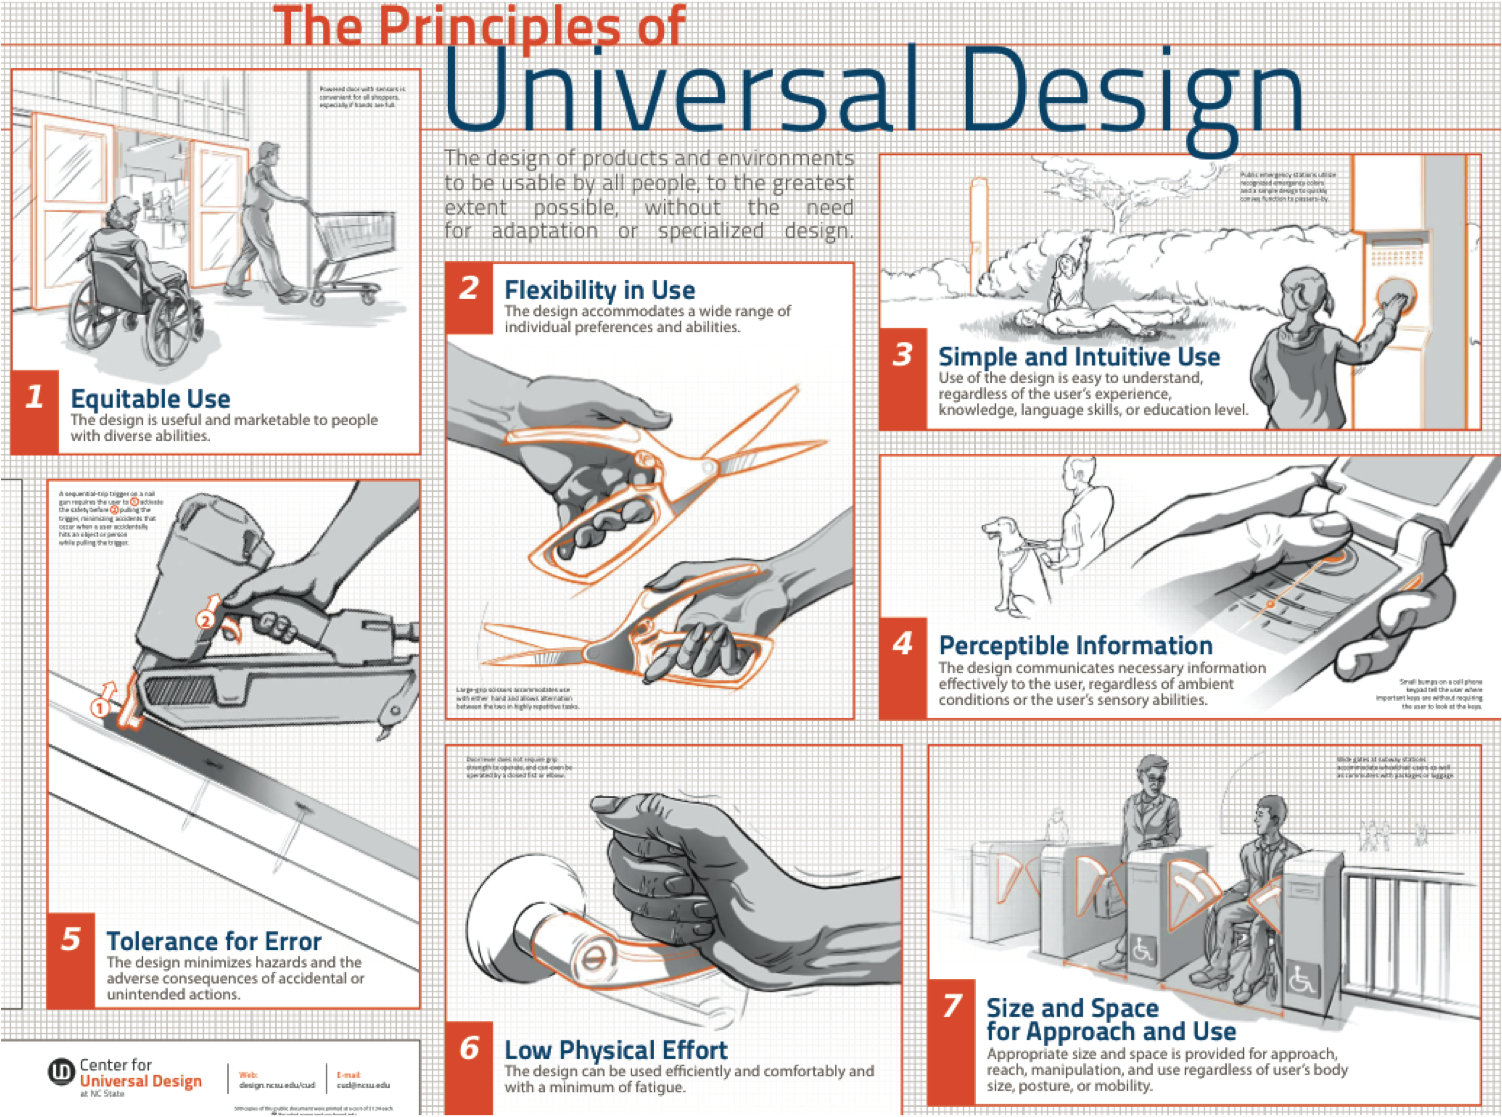 Making Web Services Accessible With Universal Design